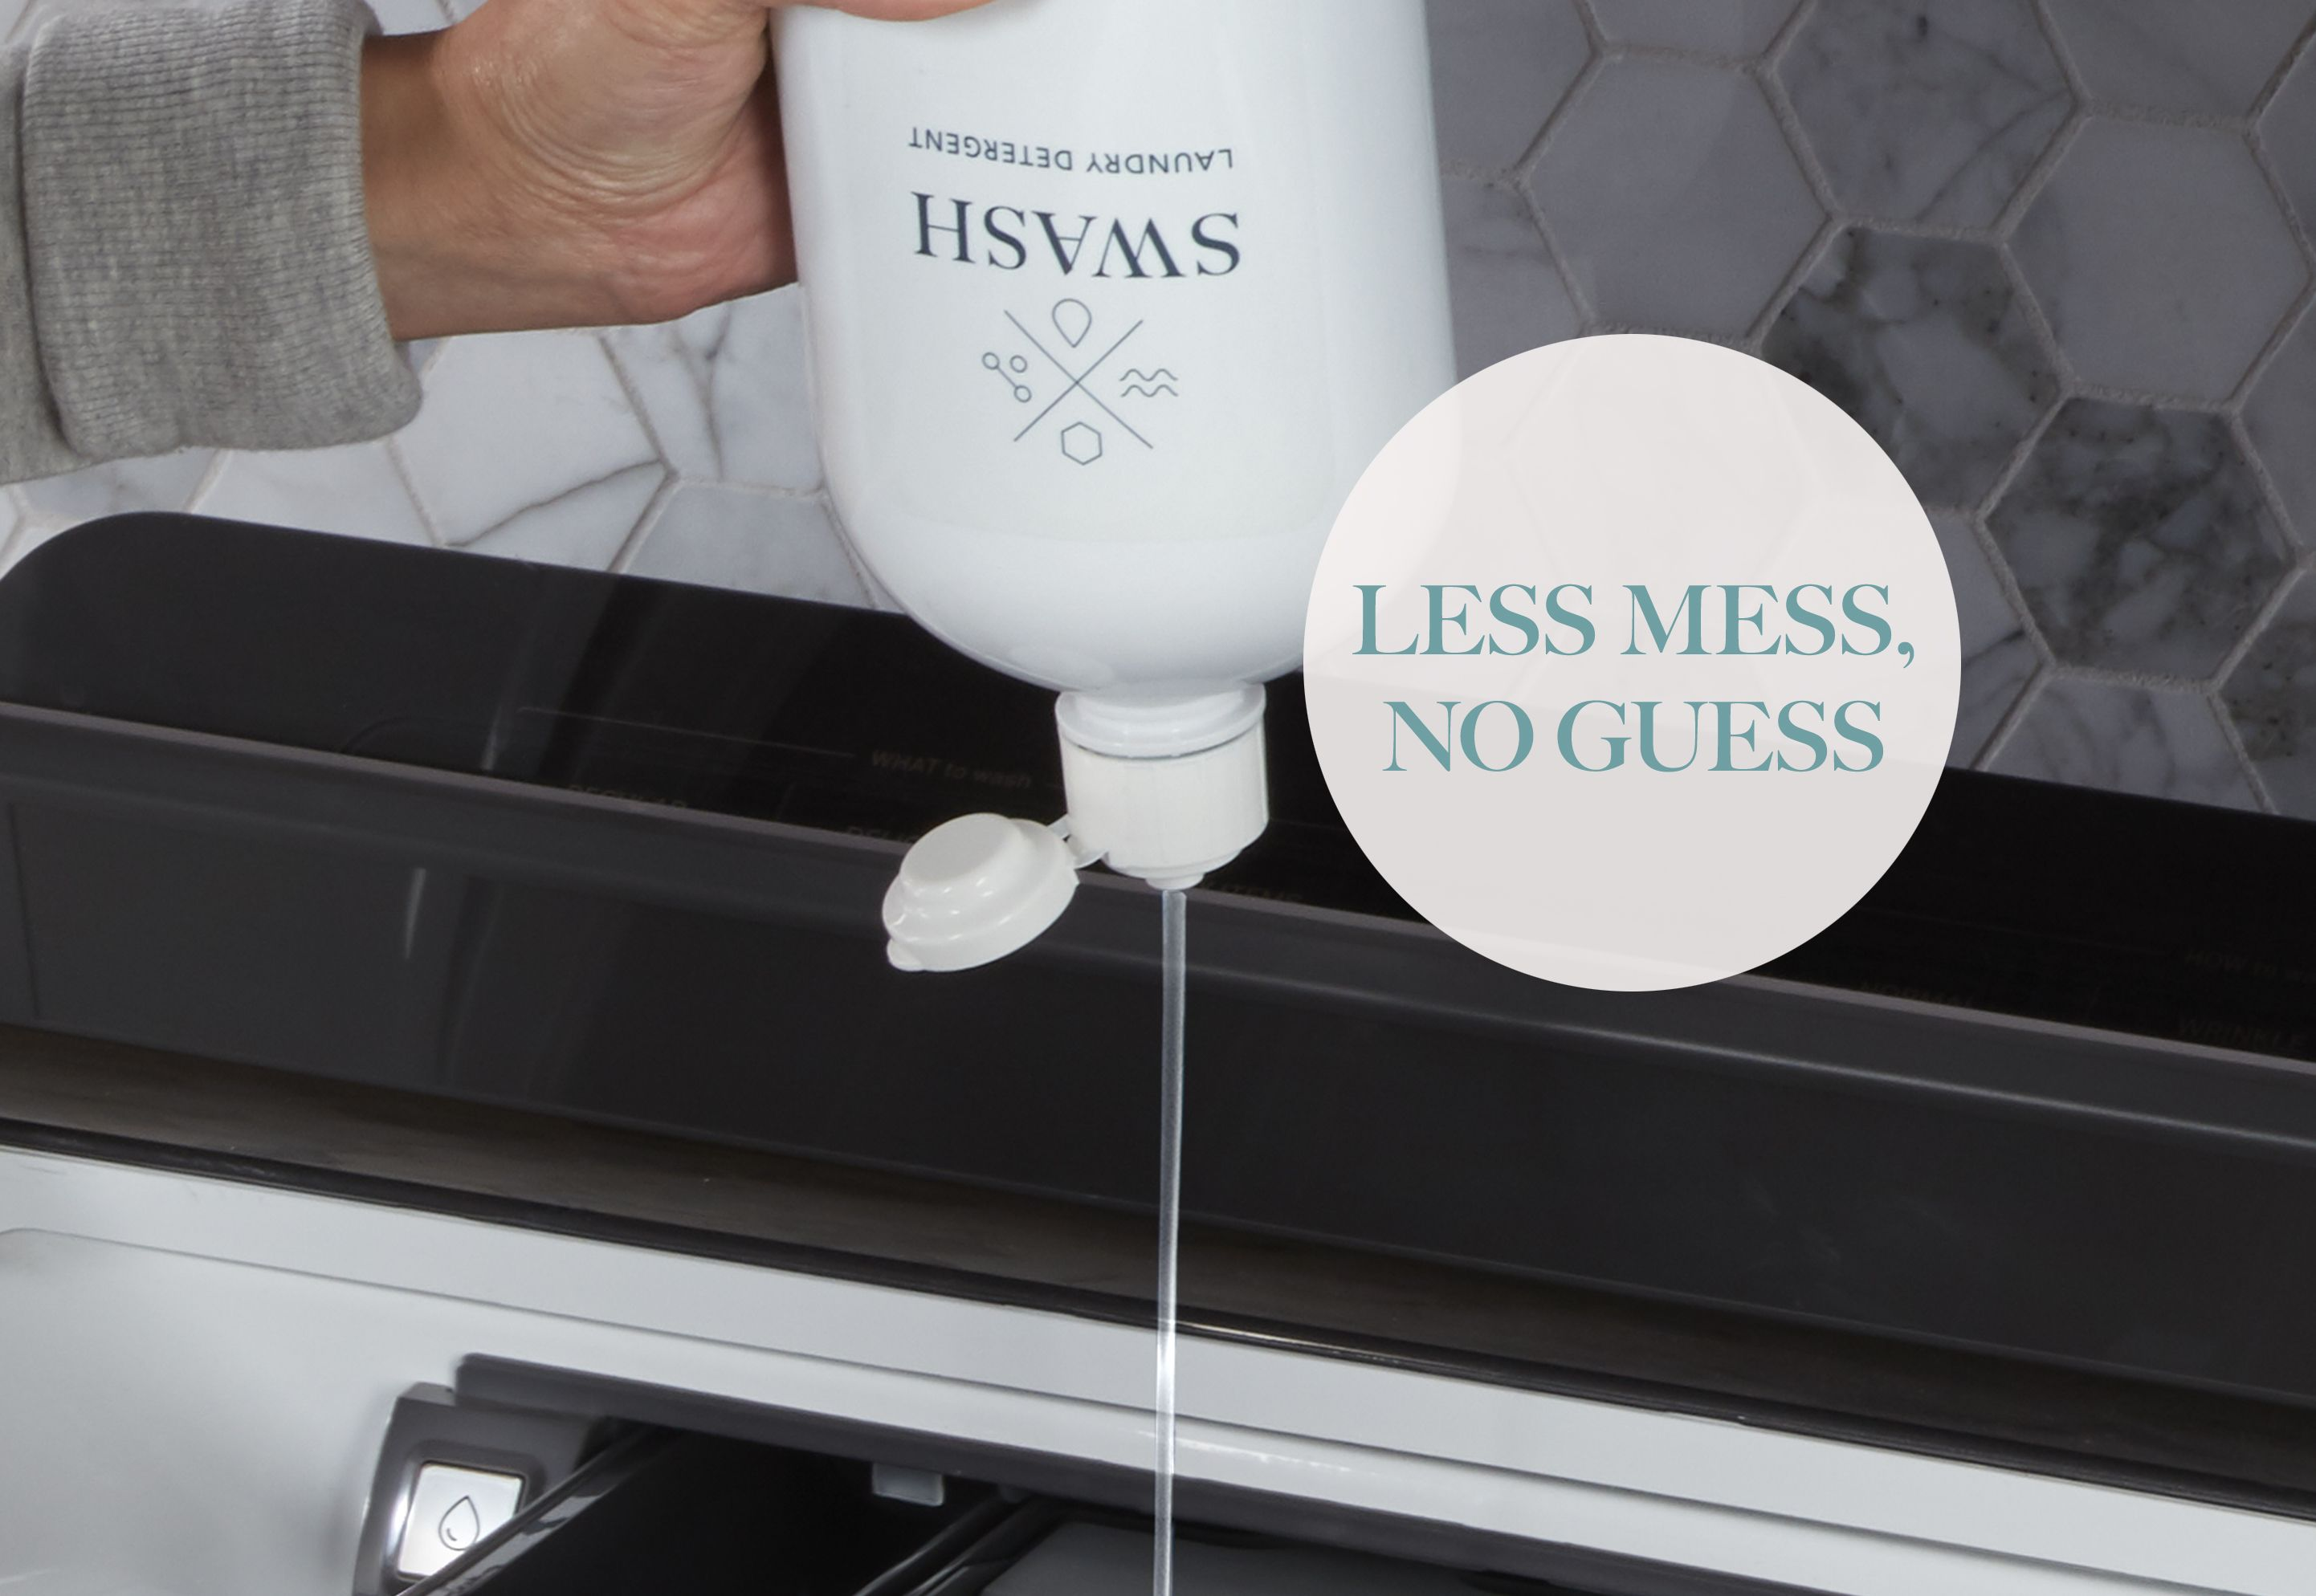 Woman dispensing Swash Pure Linen laundry detergent into her washing machine